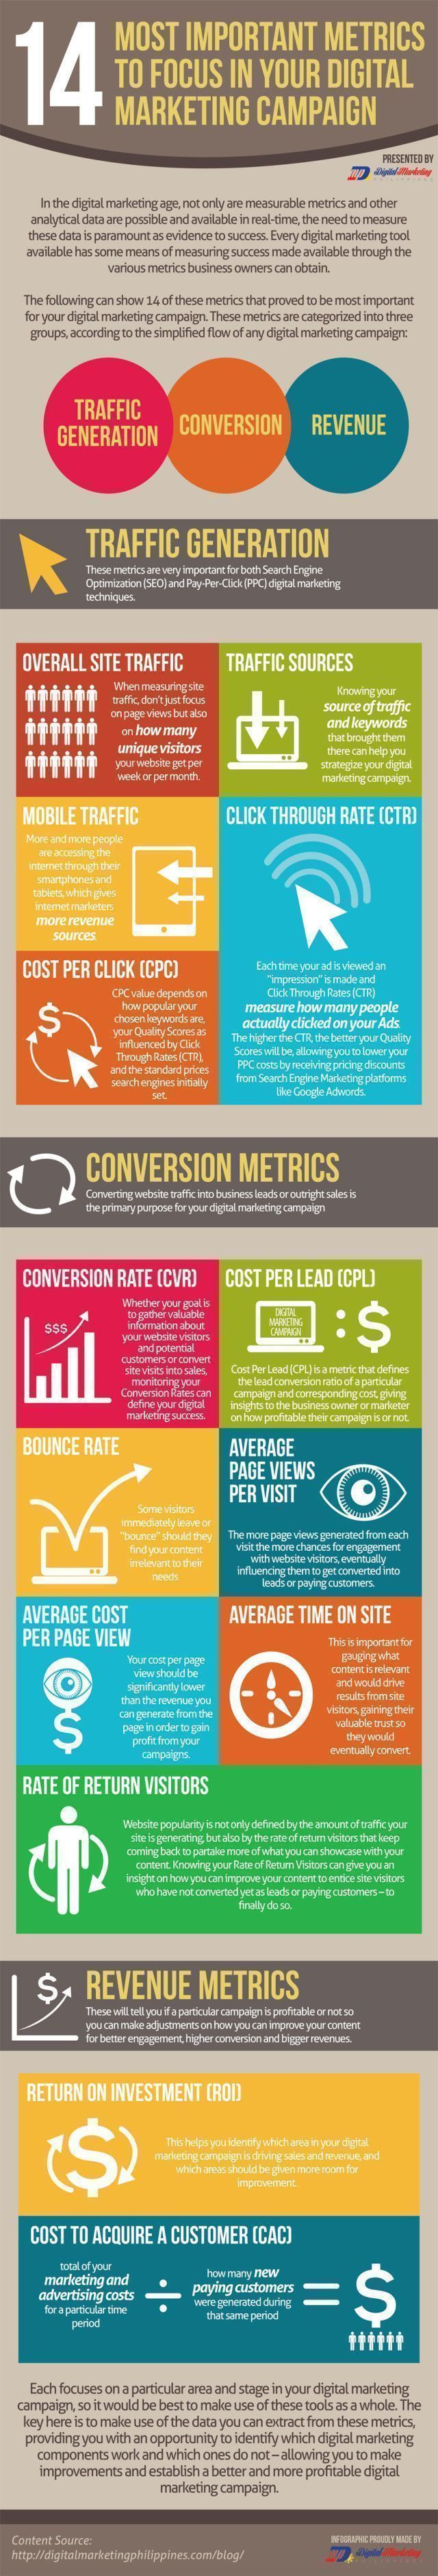 14 of the most important metrics to focus on in your digital marketing campaign For more social media marketing tips and resources visit www.socialmediabusinessacademy.com Marketing Inforgraphic #digitalmarketingdesign #digitalmarketingcampaign